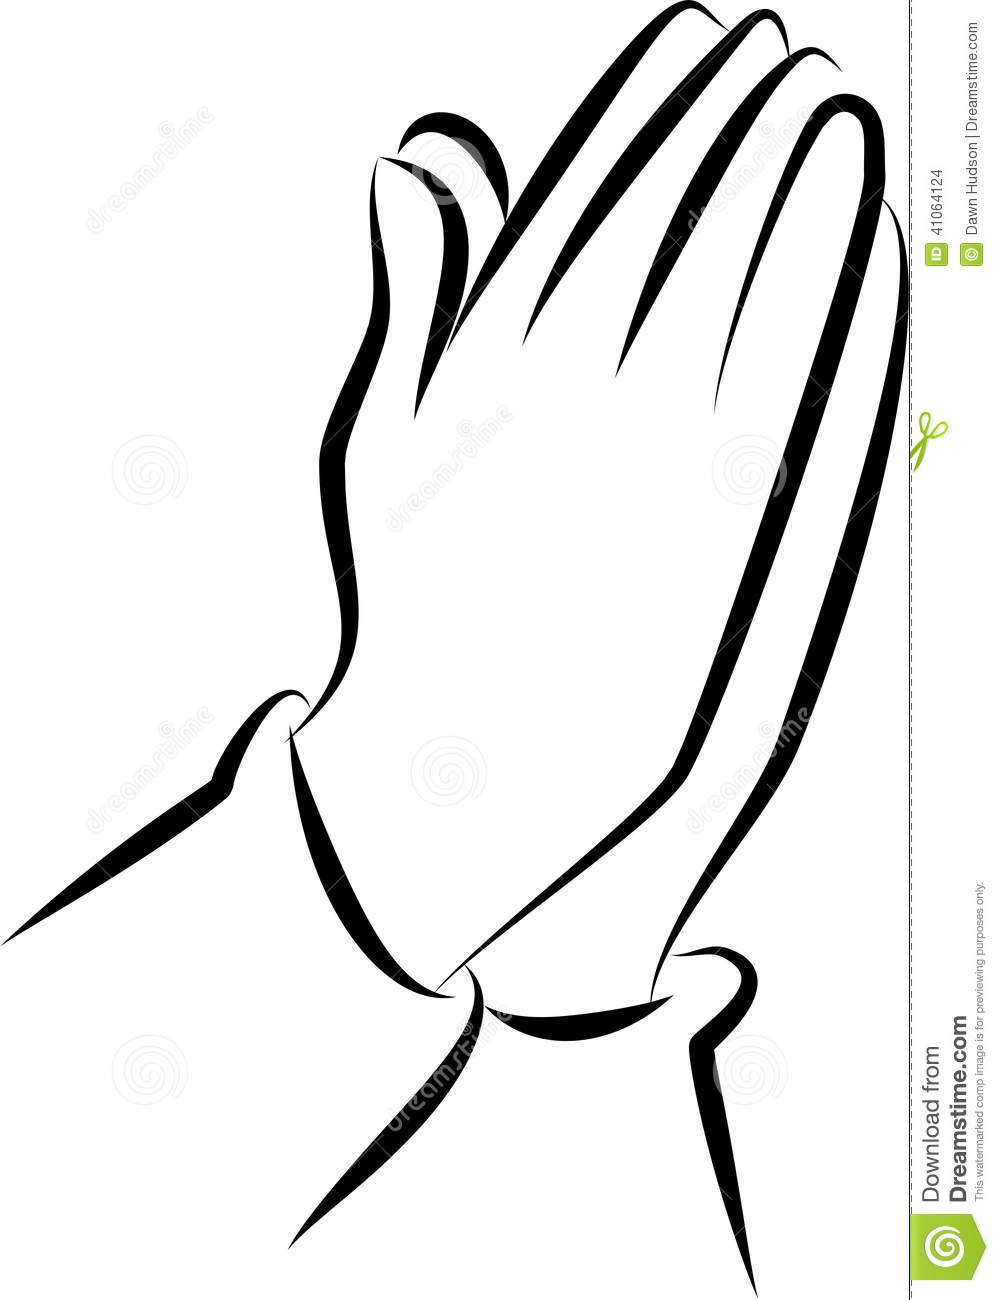 Hand Clipart Black And White  - Clipart Praying Hands